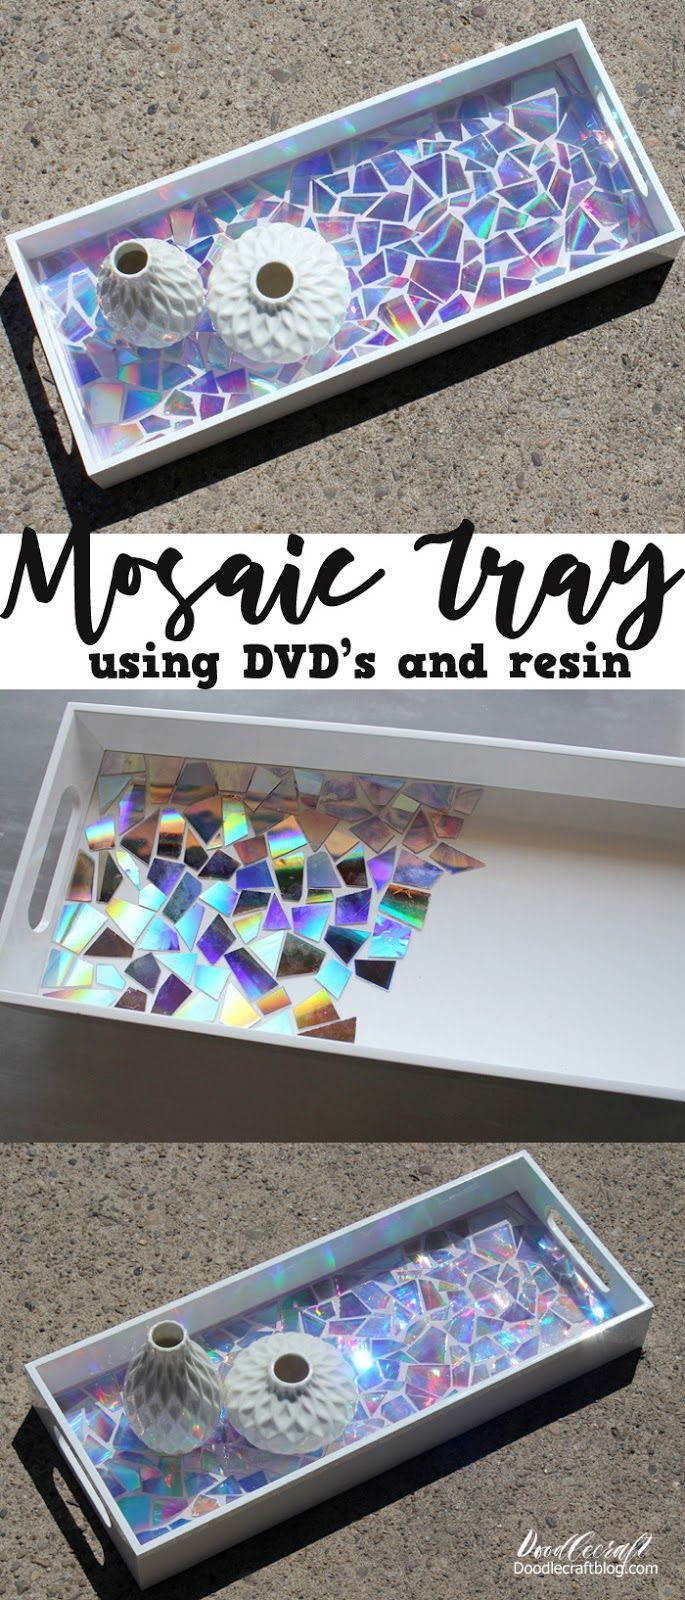 a great idea to recycle those old CD's you never use and turn them into a functional work of art!